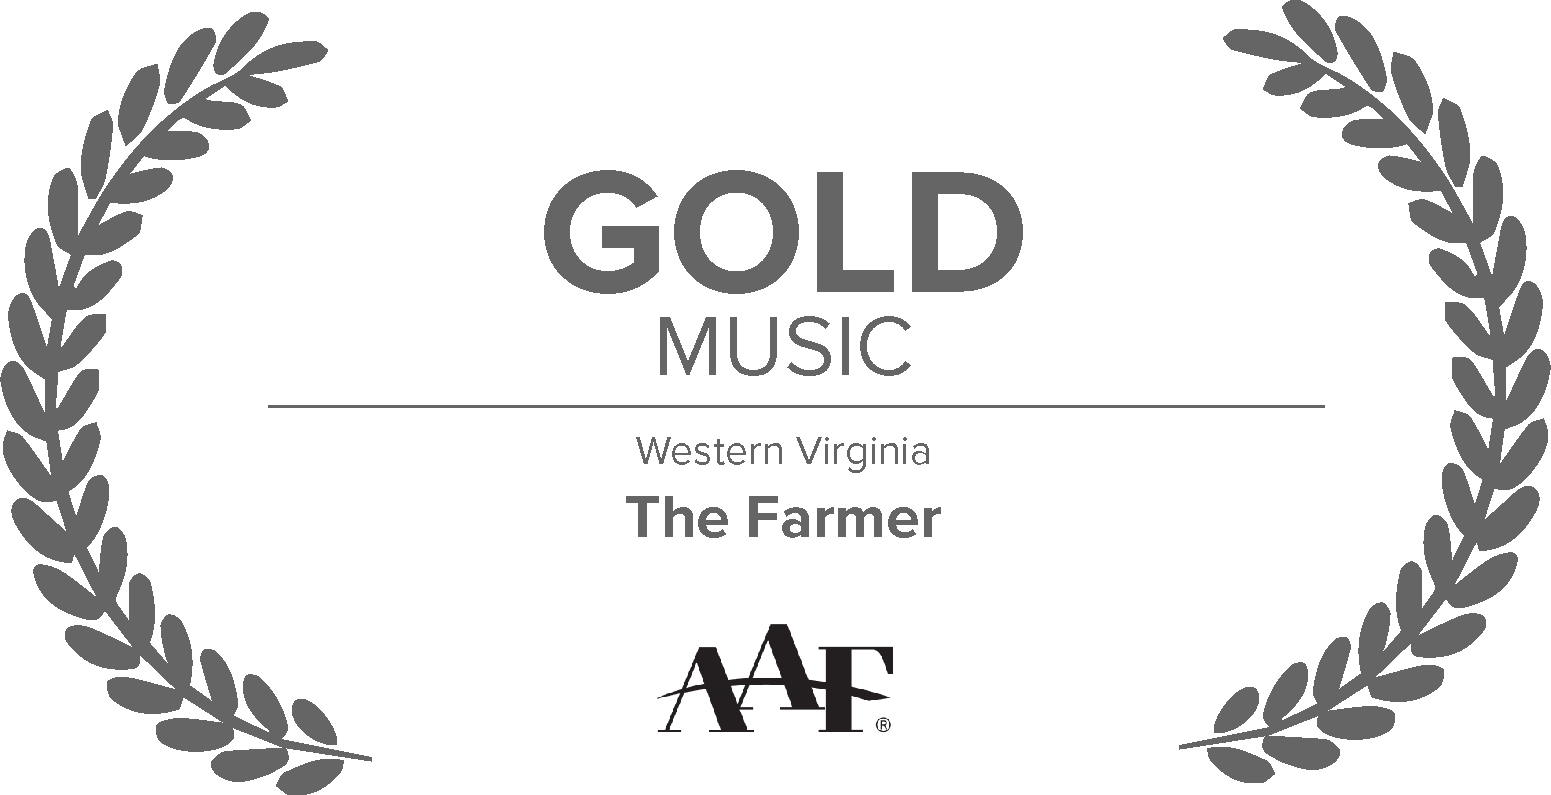 AAF_Gold_Music@3x.png